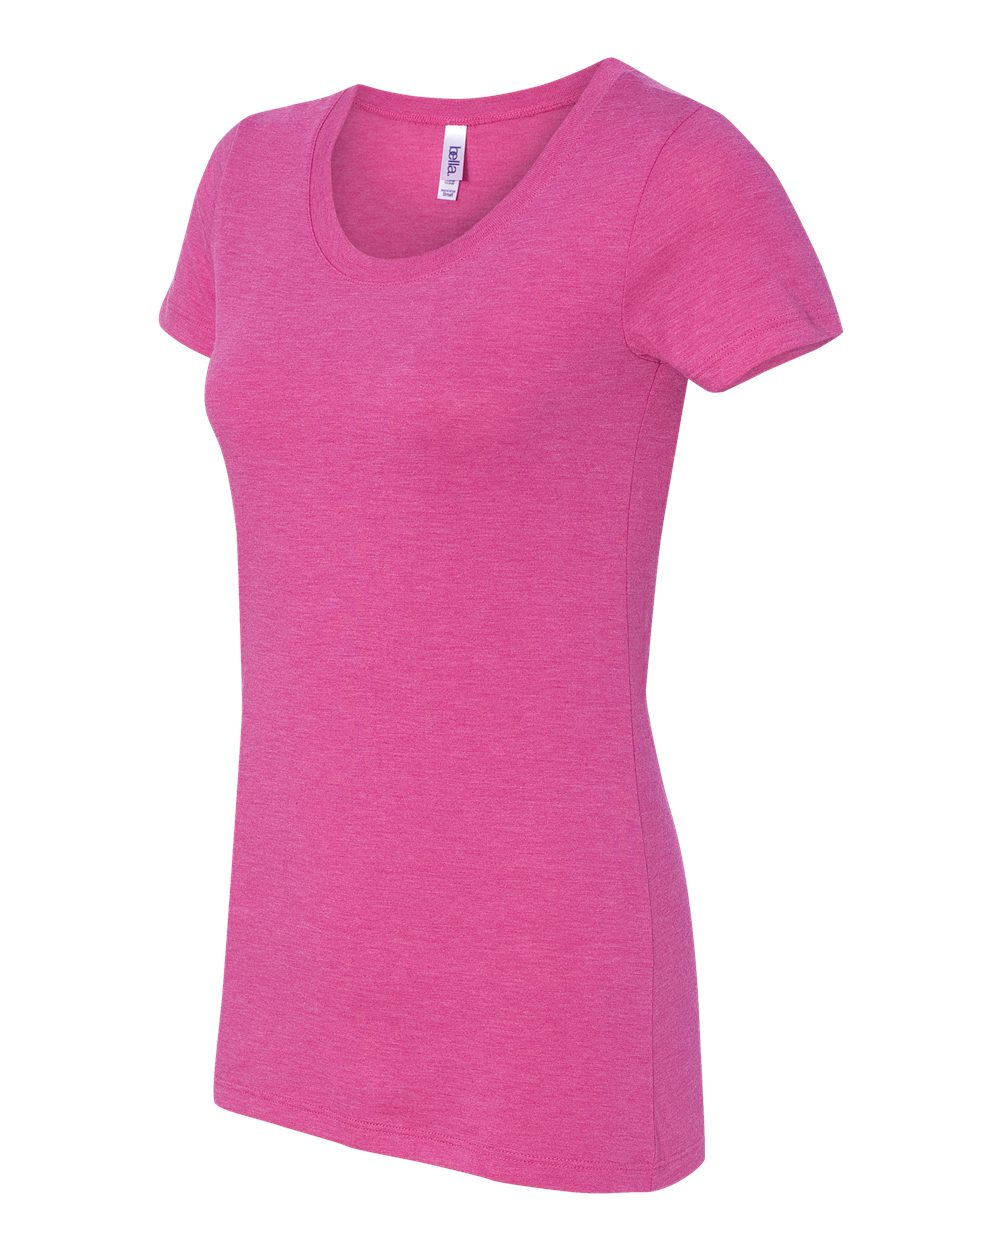 Bella-Canvas-Women-039-s-Triblend-Short-Sleeve-T-Shirt-B8413-S-2XL thumbnail 48